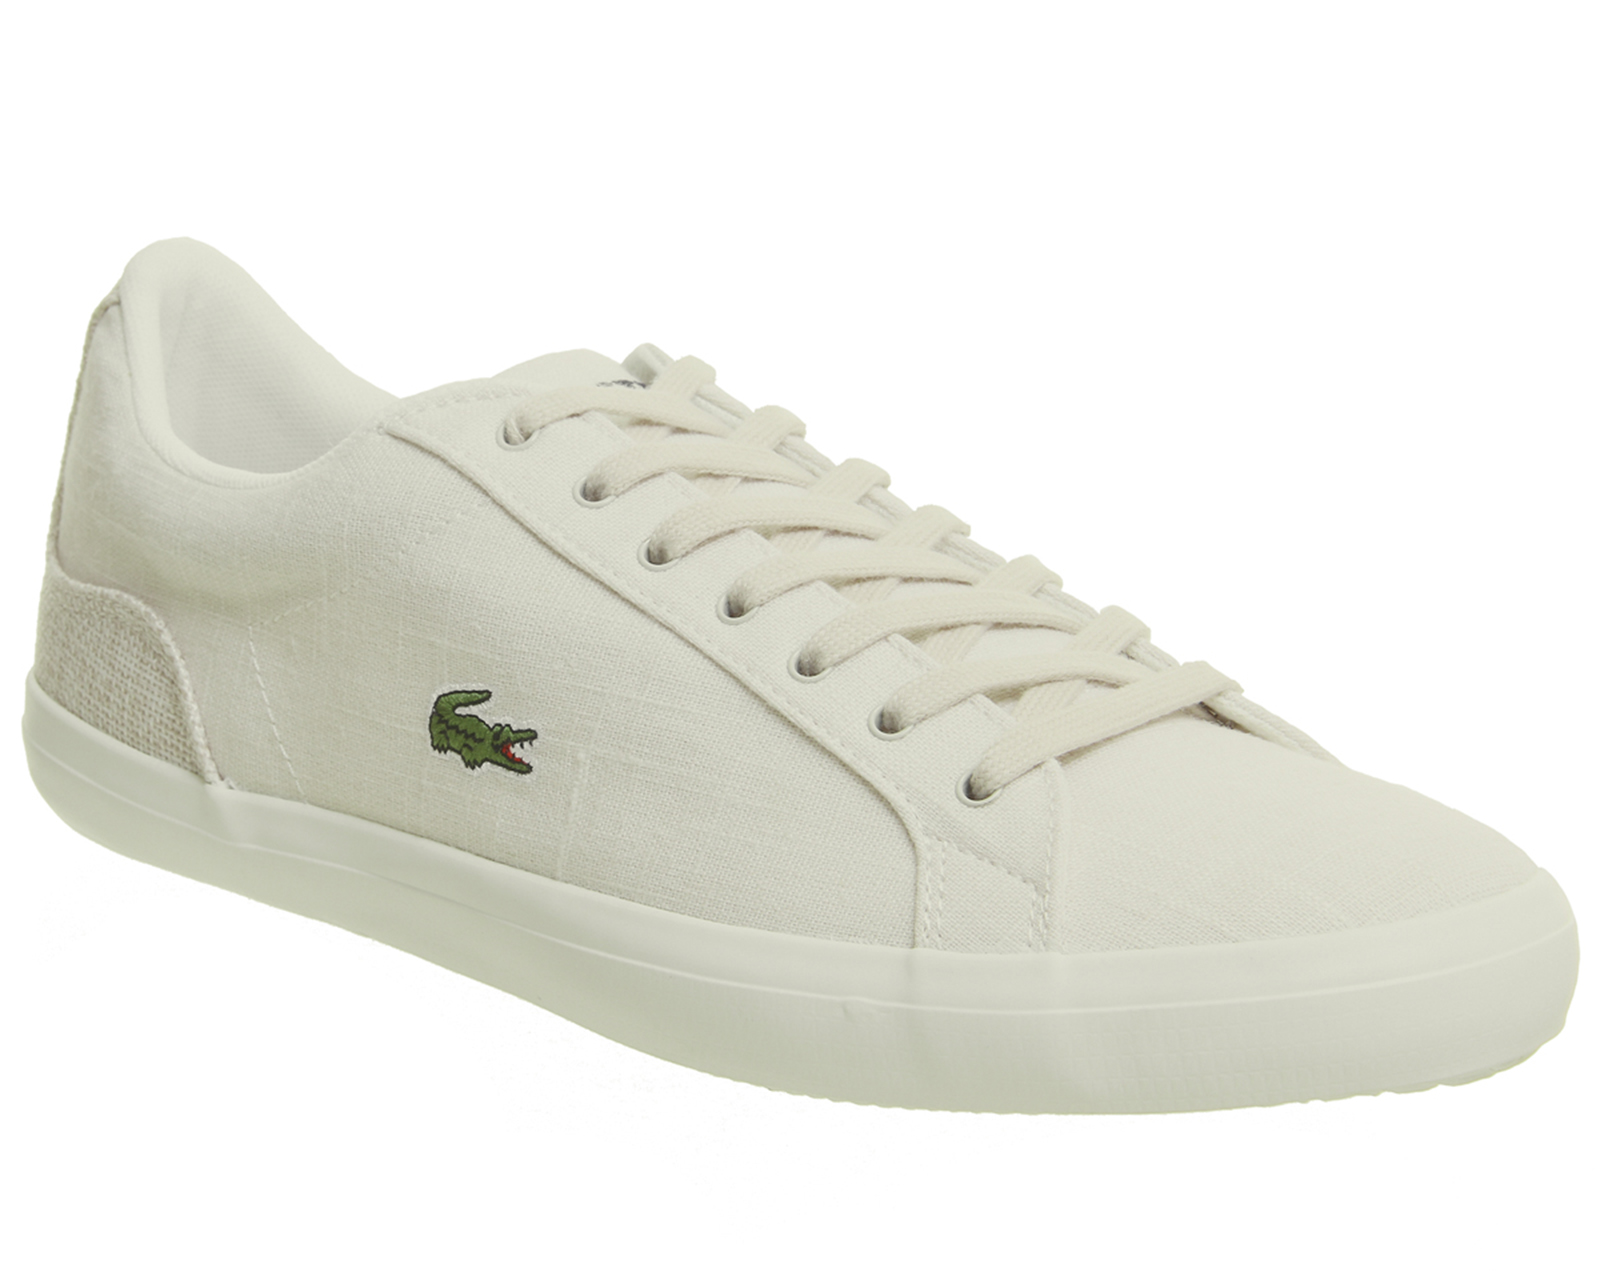 Sentinel Lacoste Lerond Trainers White Natural Trainers Shoes bf3282d6511